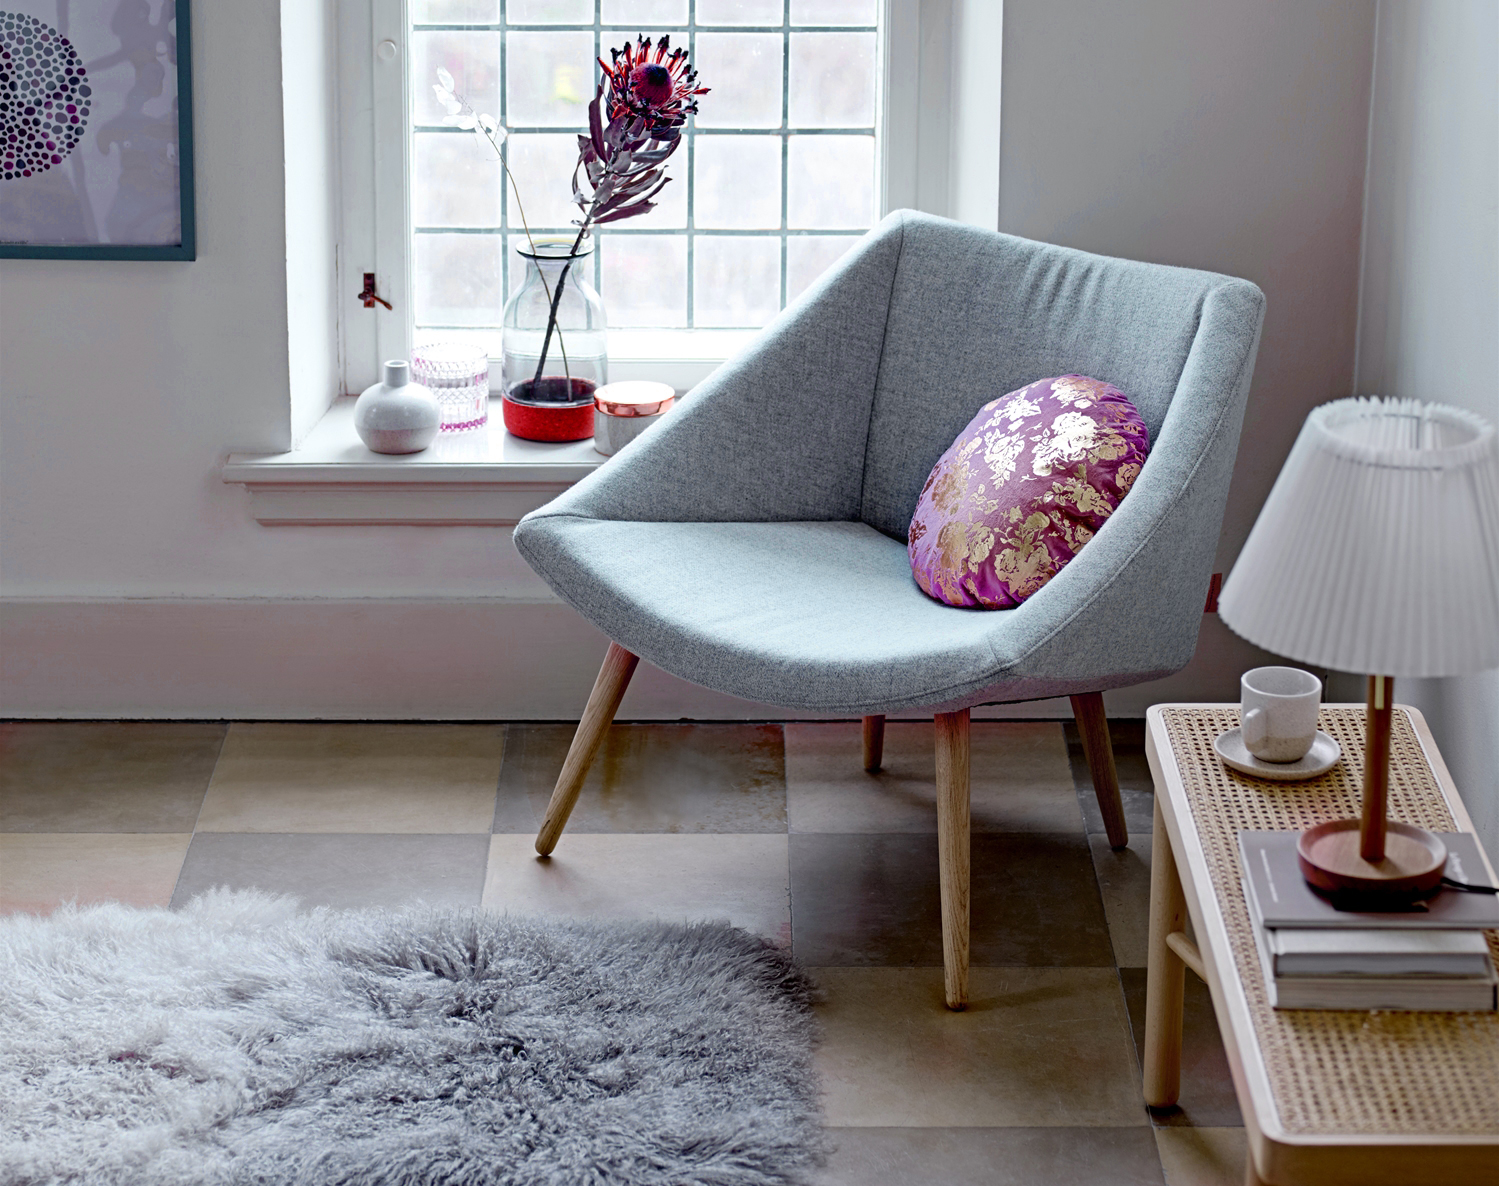 Image Courtesy of Bloomingville - Product Shown: Elegant Chair, Grey, Wool; Table lamp, Nature, Oak - Life-Styled.net